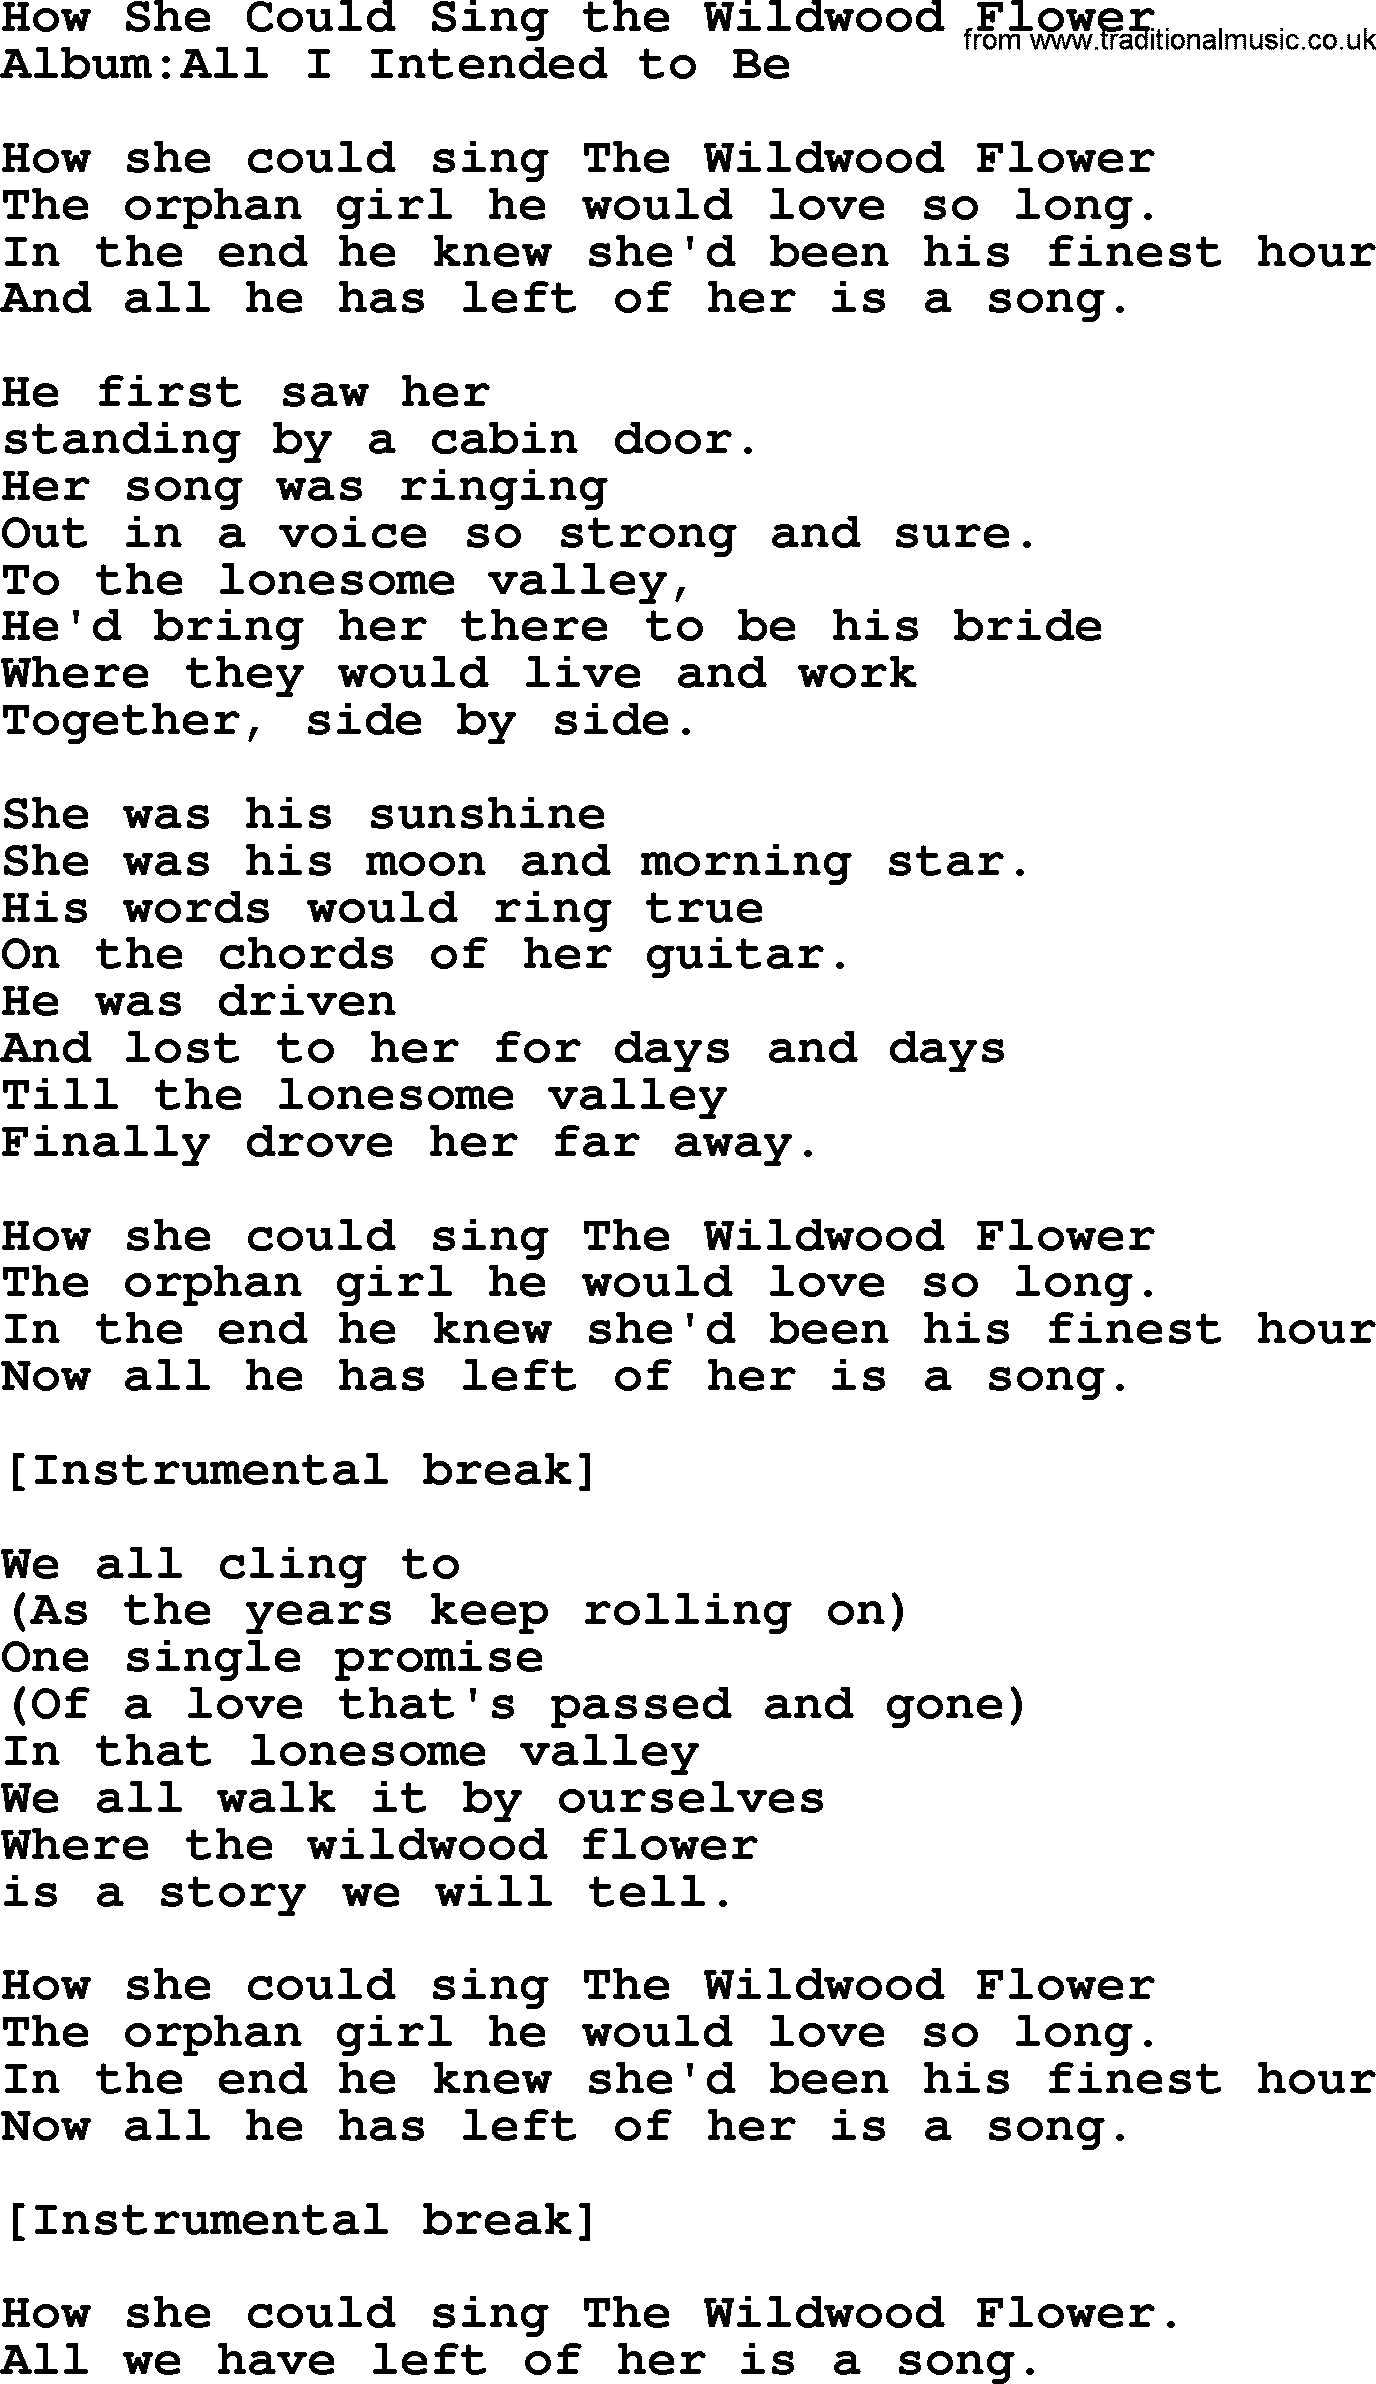 Emmylou Harris Song How She Could Sing The Wildwood Flower Lyrics